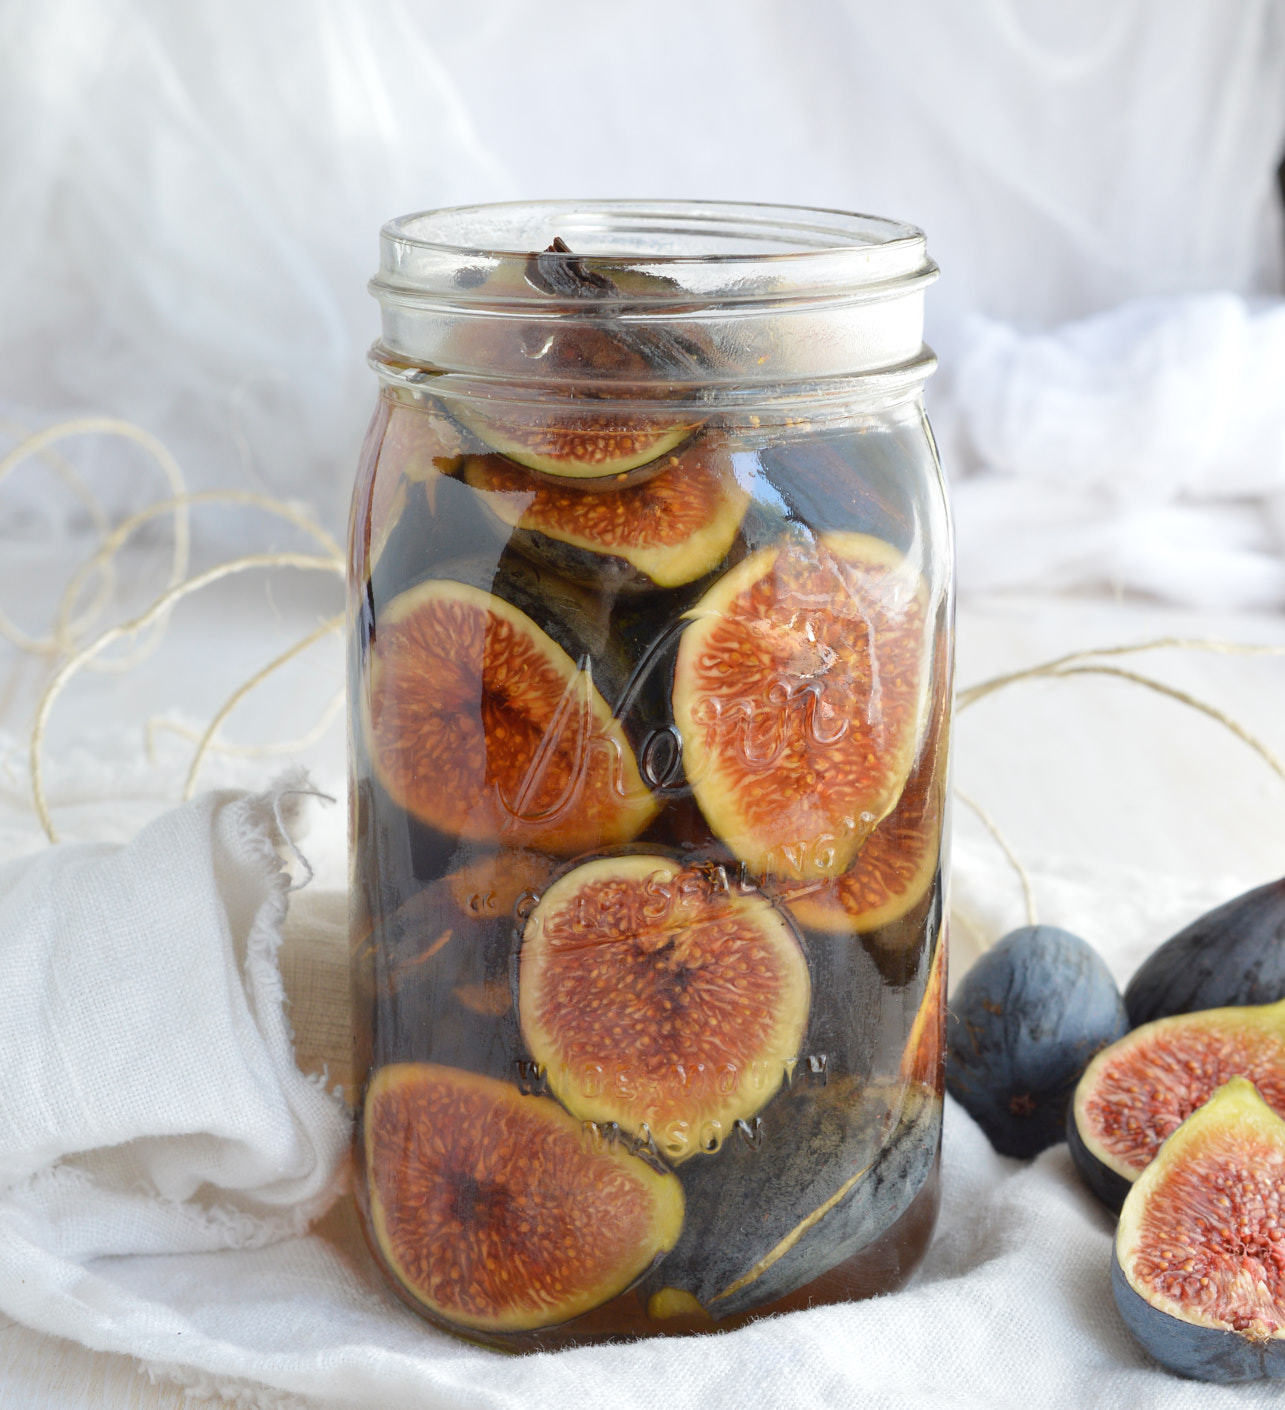 Fig Home Remedies: Fight Pcos and Acne with Figs